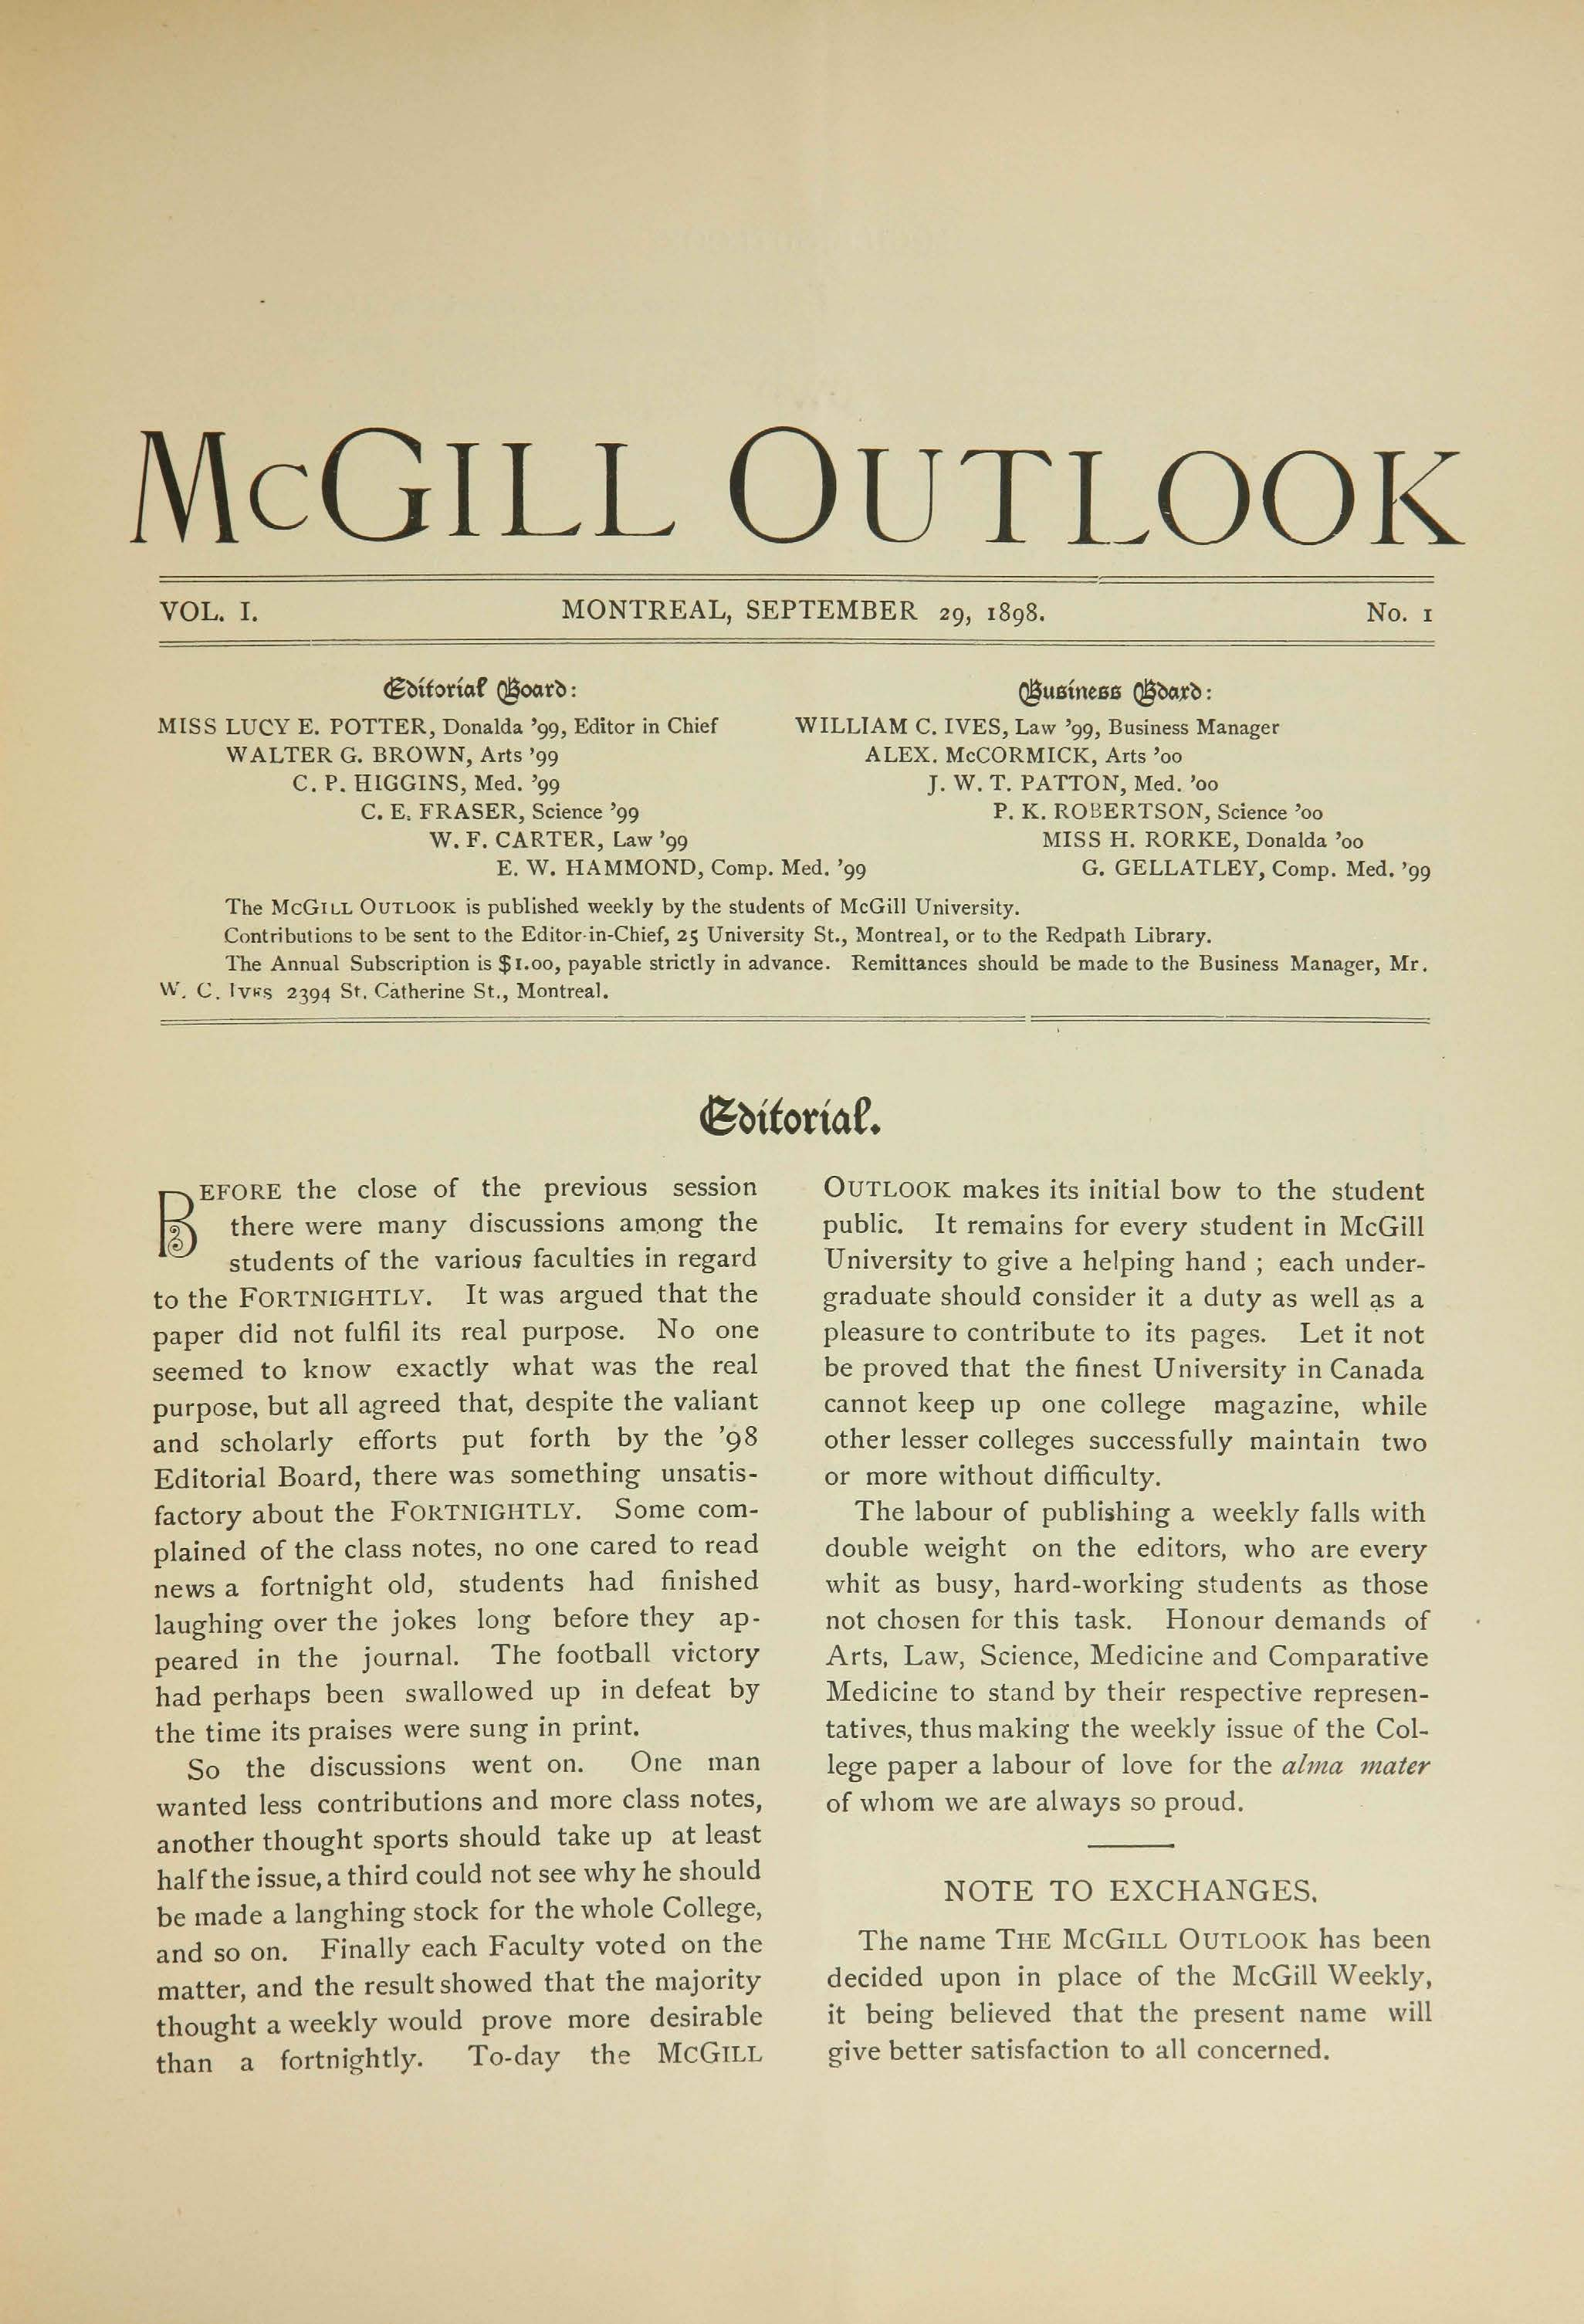 McGill Outlook Vol. 01 No. 01: September 29, 1898